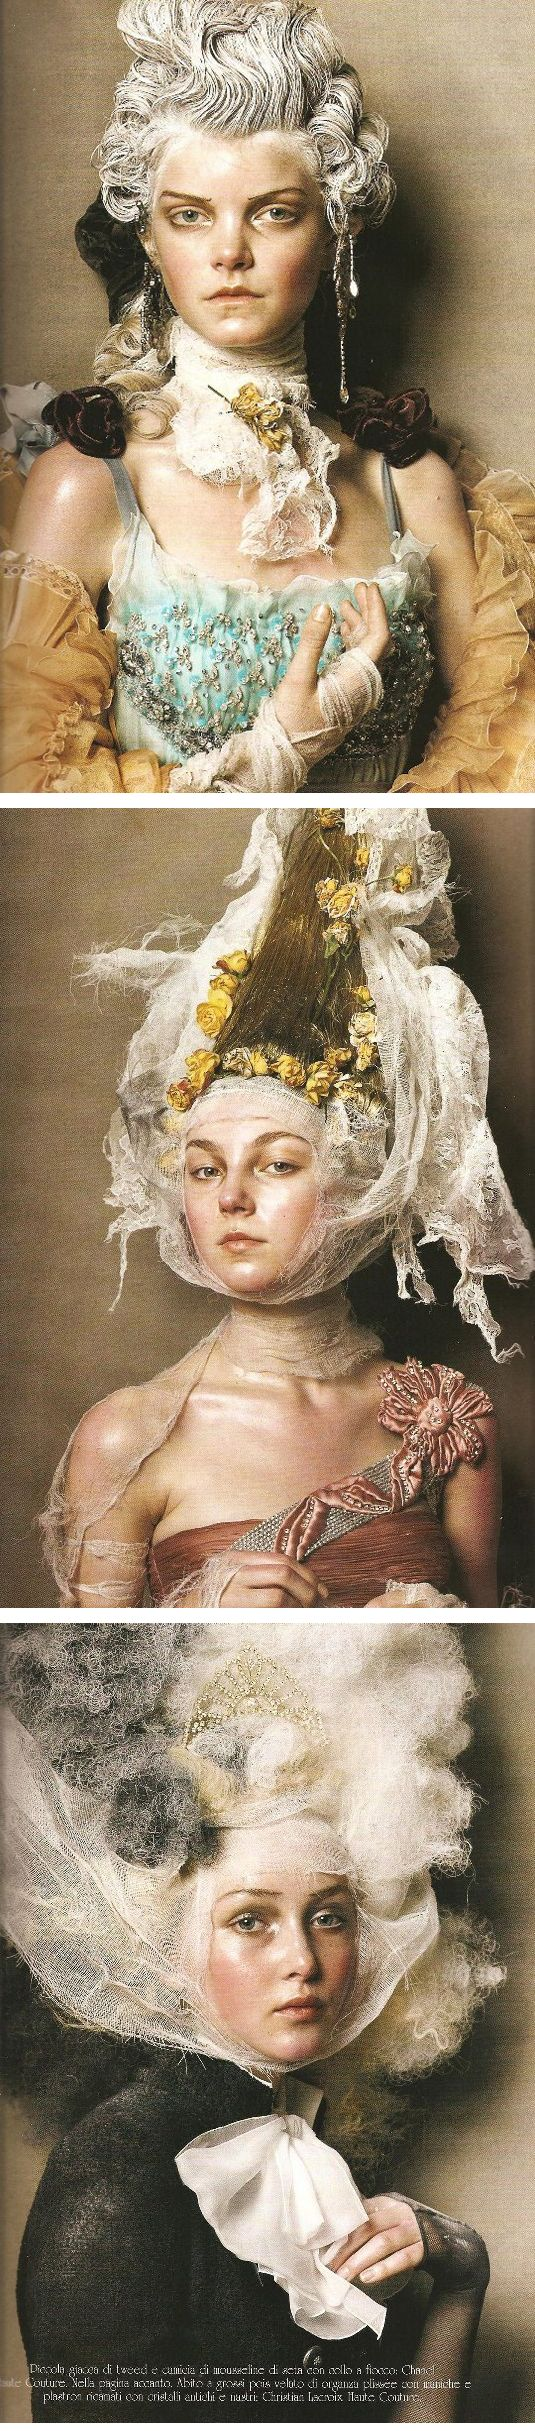 Couture Magic | By Steven Meisel for Vogue Italia, March 2005.